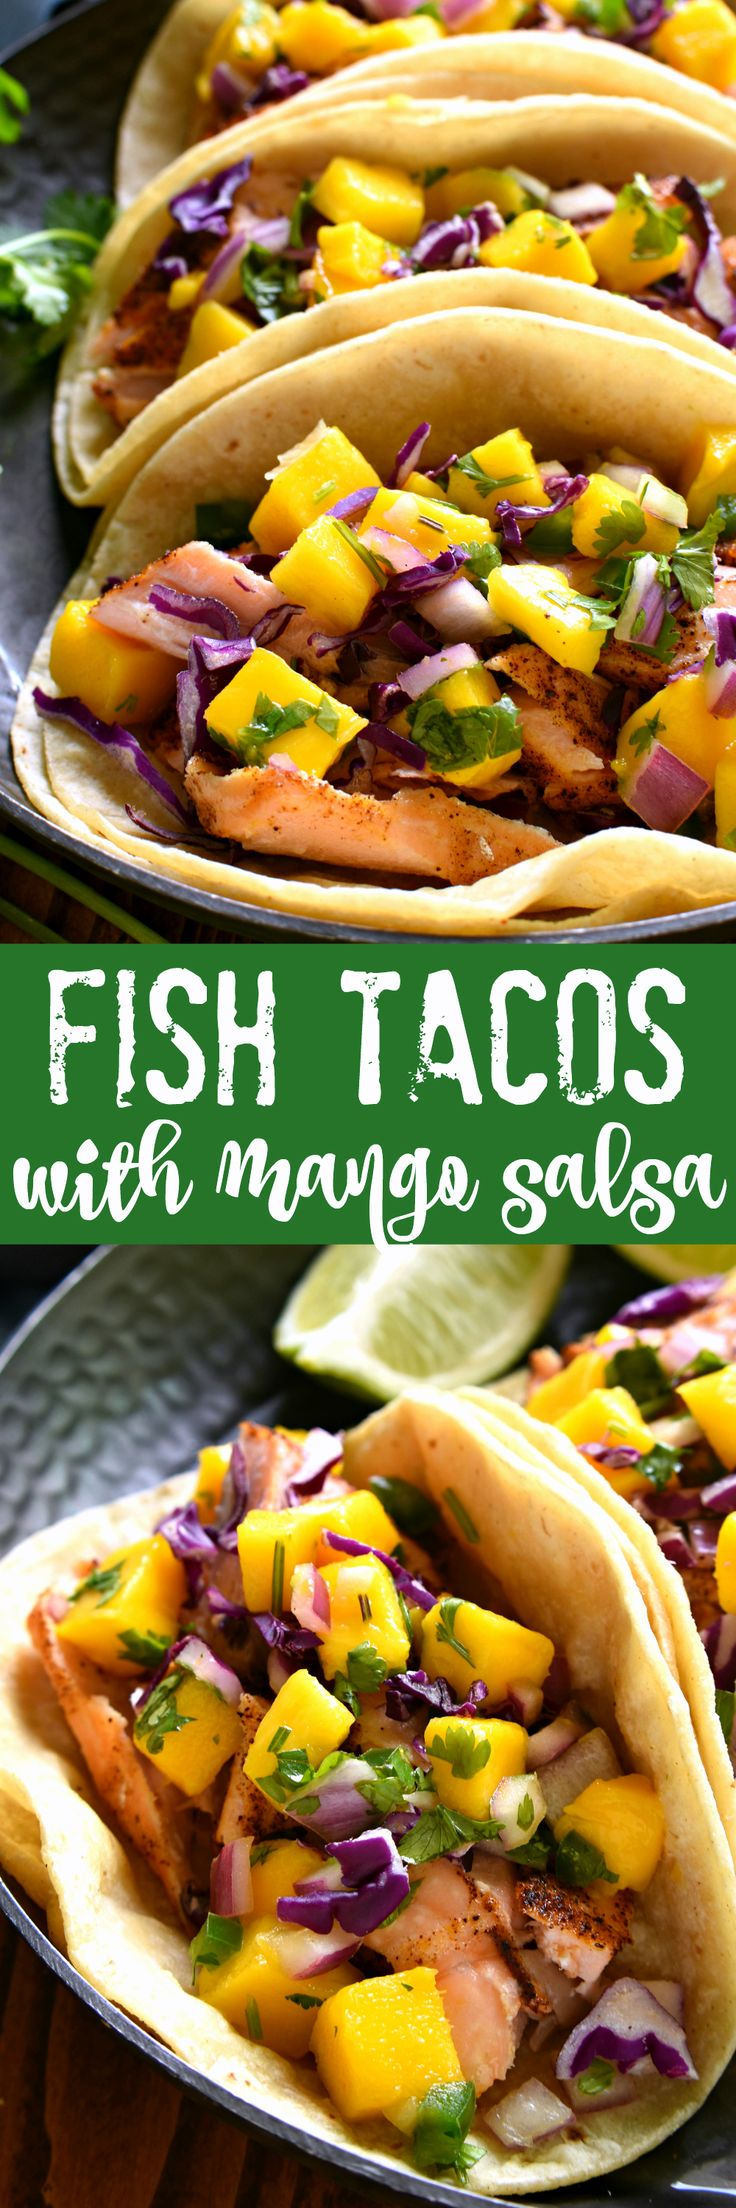 These Fish Tacos combine the deliciousness of salmon with the fun of mango salsa! They're super easy to make and perfect for the warmer months ahead....sure to become a new favorite!